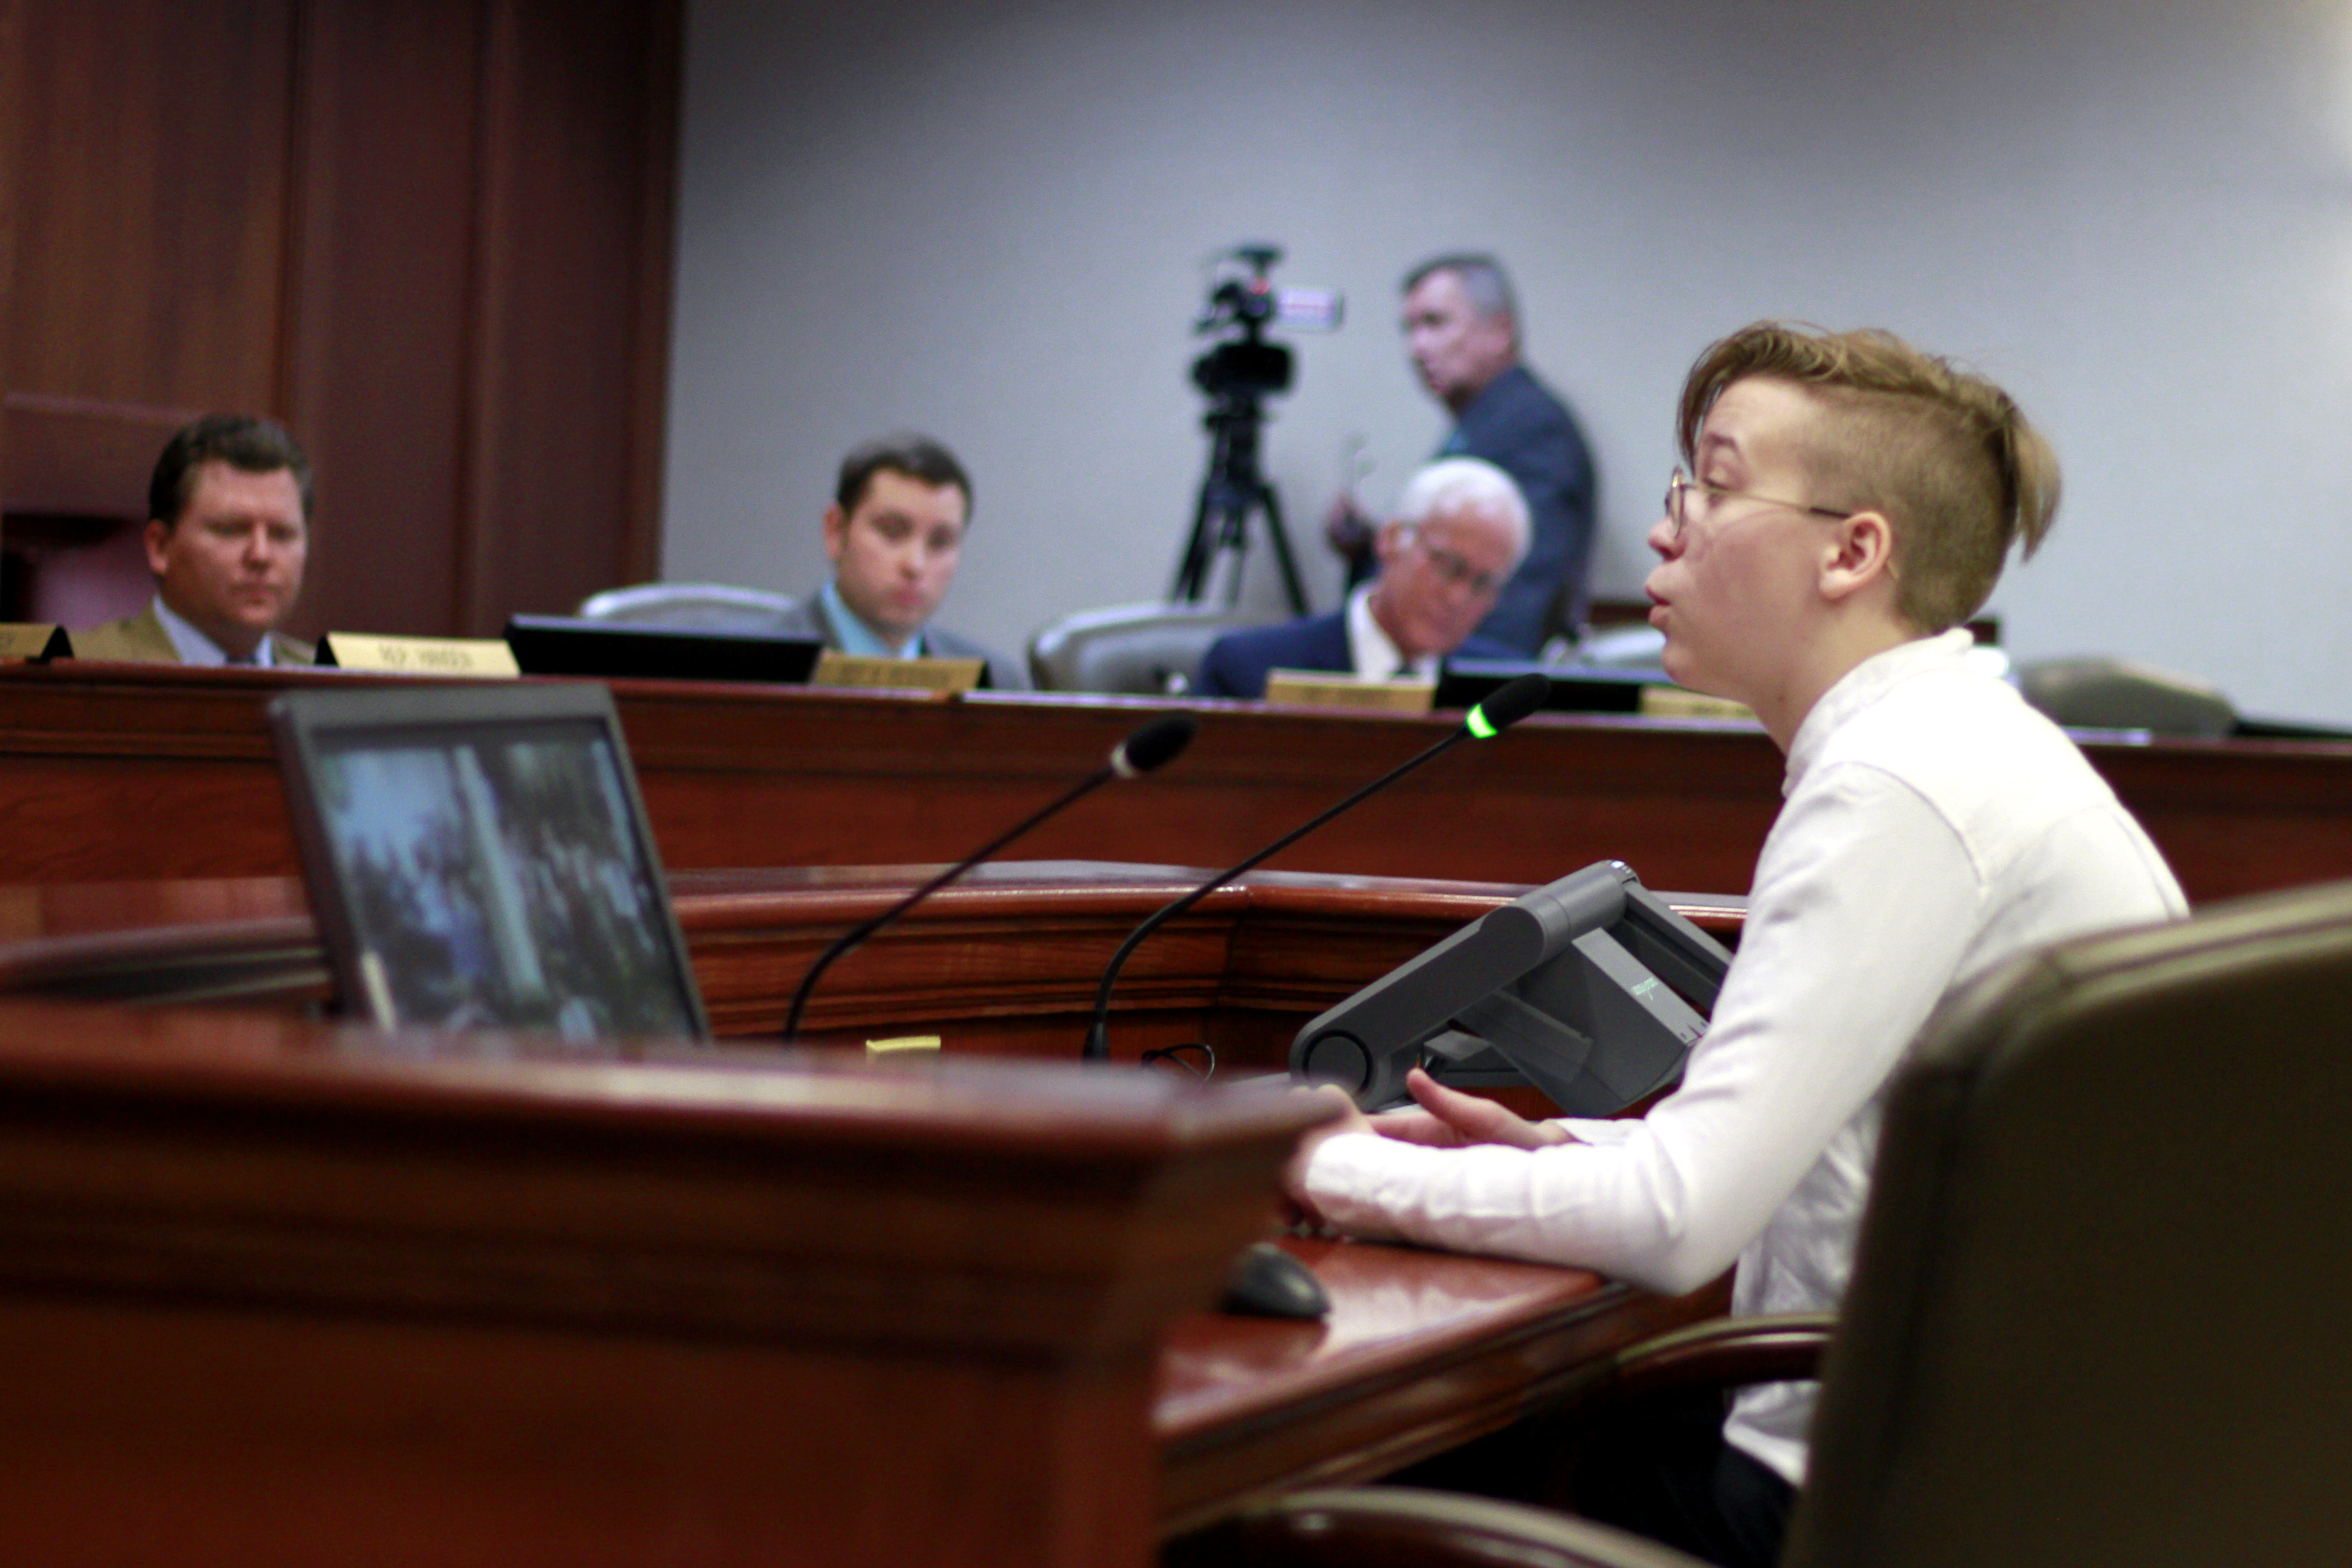 Quinncy Parke, 17, testifies to the South Dakota House State Affairs committee against a bill that would make it illegal for doctors to give gender reassignment surgery or hormone treatment to trabs children under 16 on Jan. 22, 2020 in Pierre, S.D.